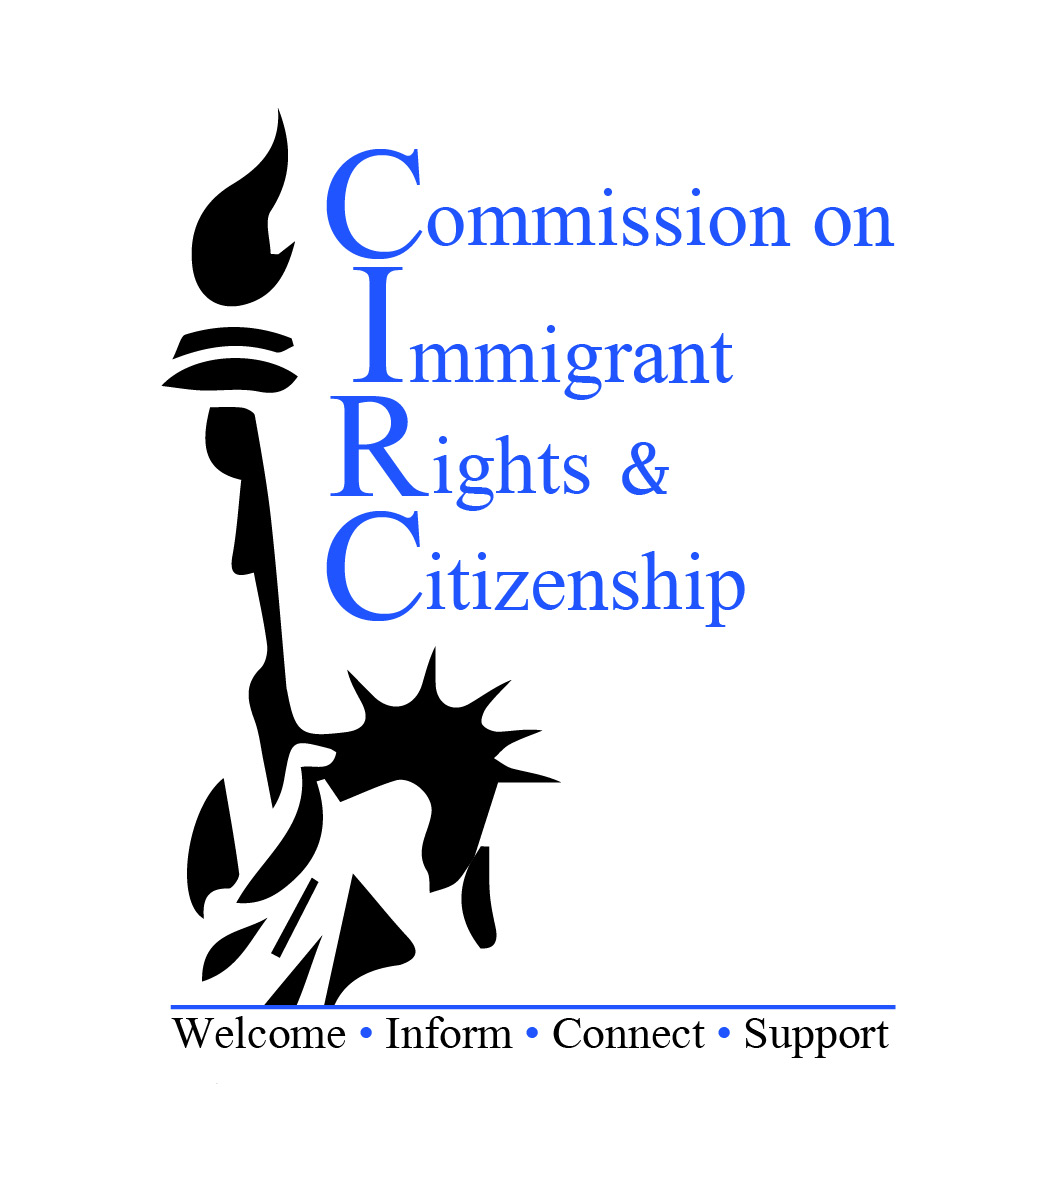 Commission on Immigrant Rights & Citizenship Logo